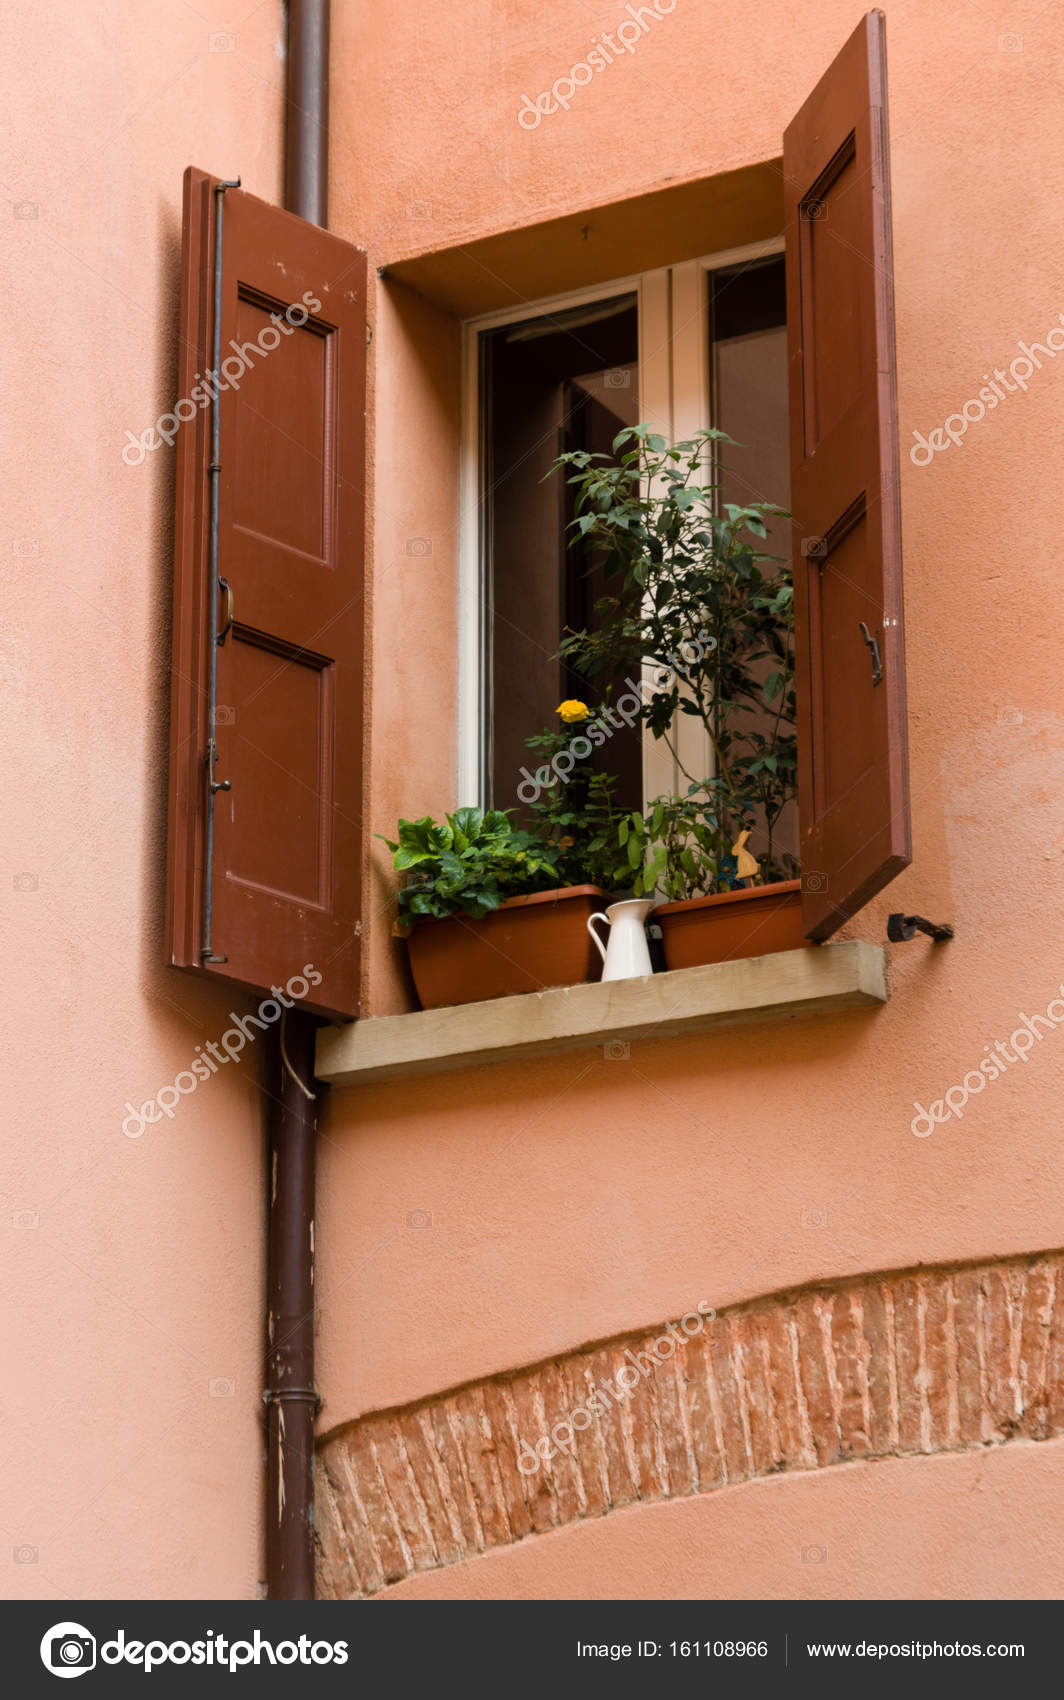 bologna haus fenster geschm ckt mit blumentopf und. Black Bedroom Furniture Sets. Home Design Ideas